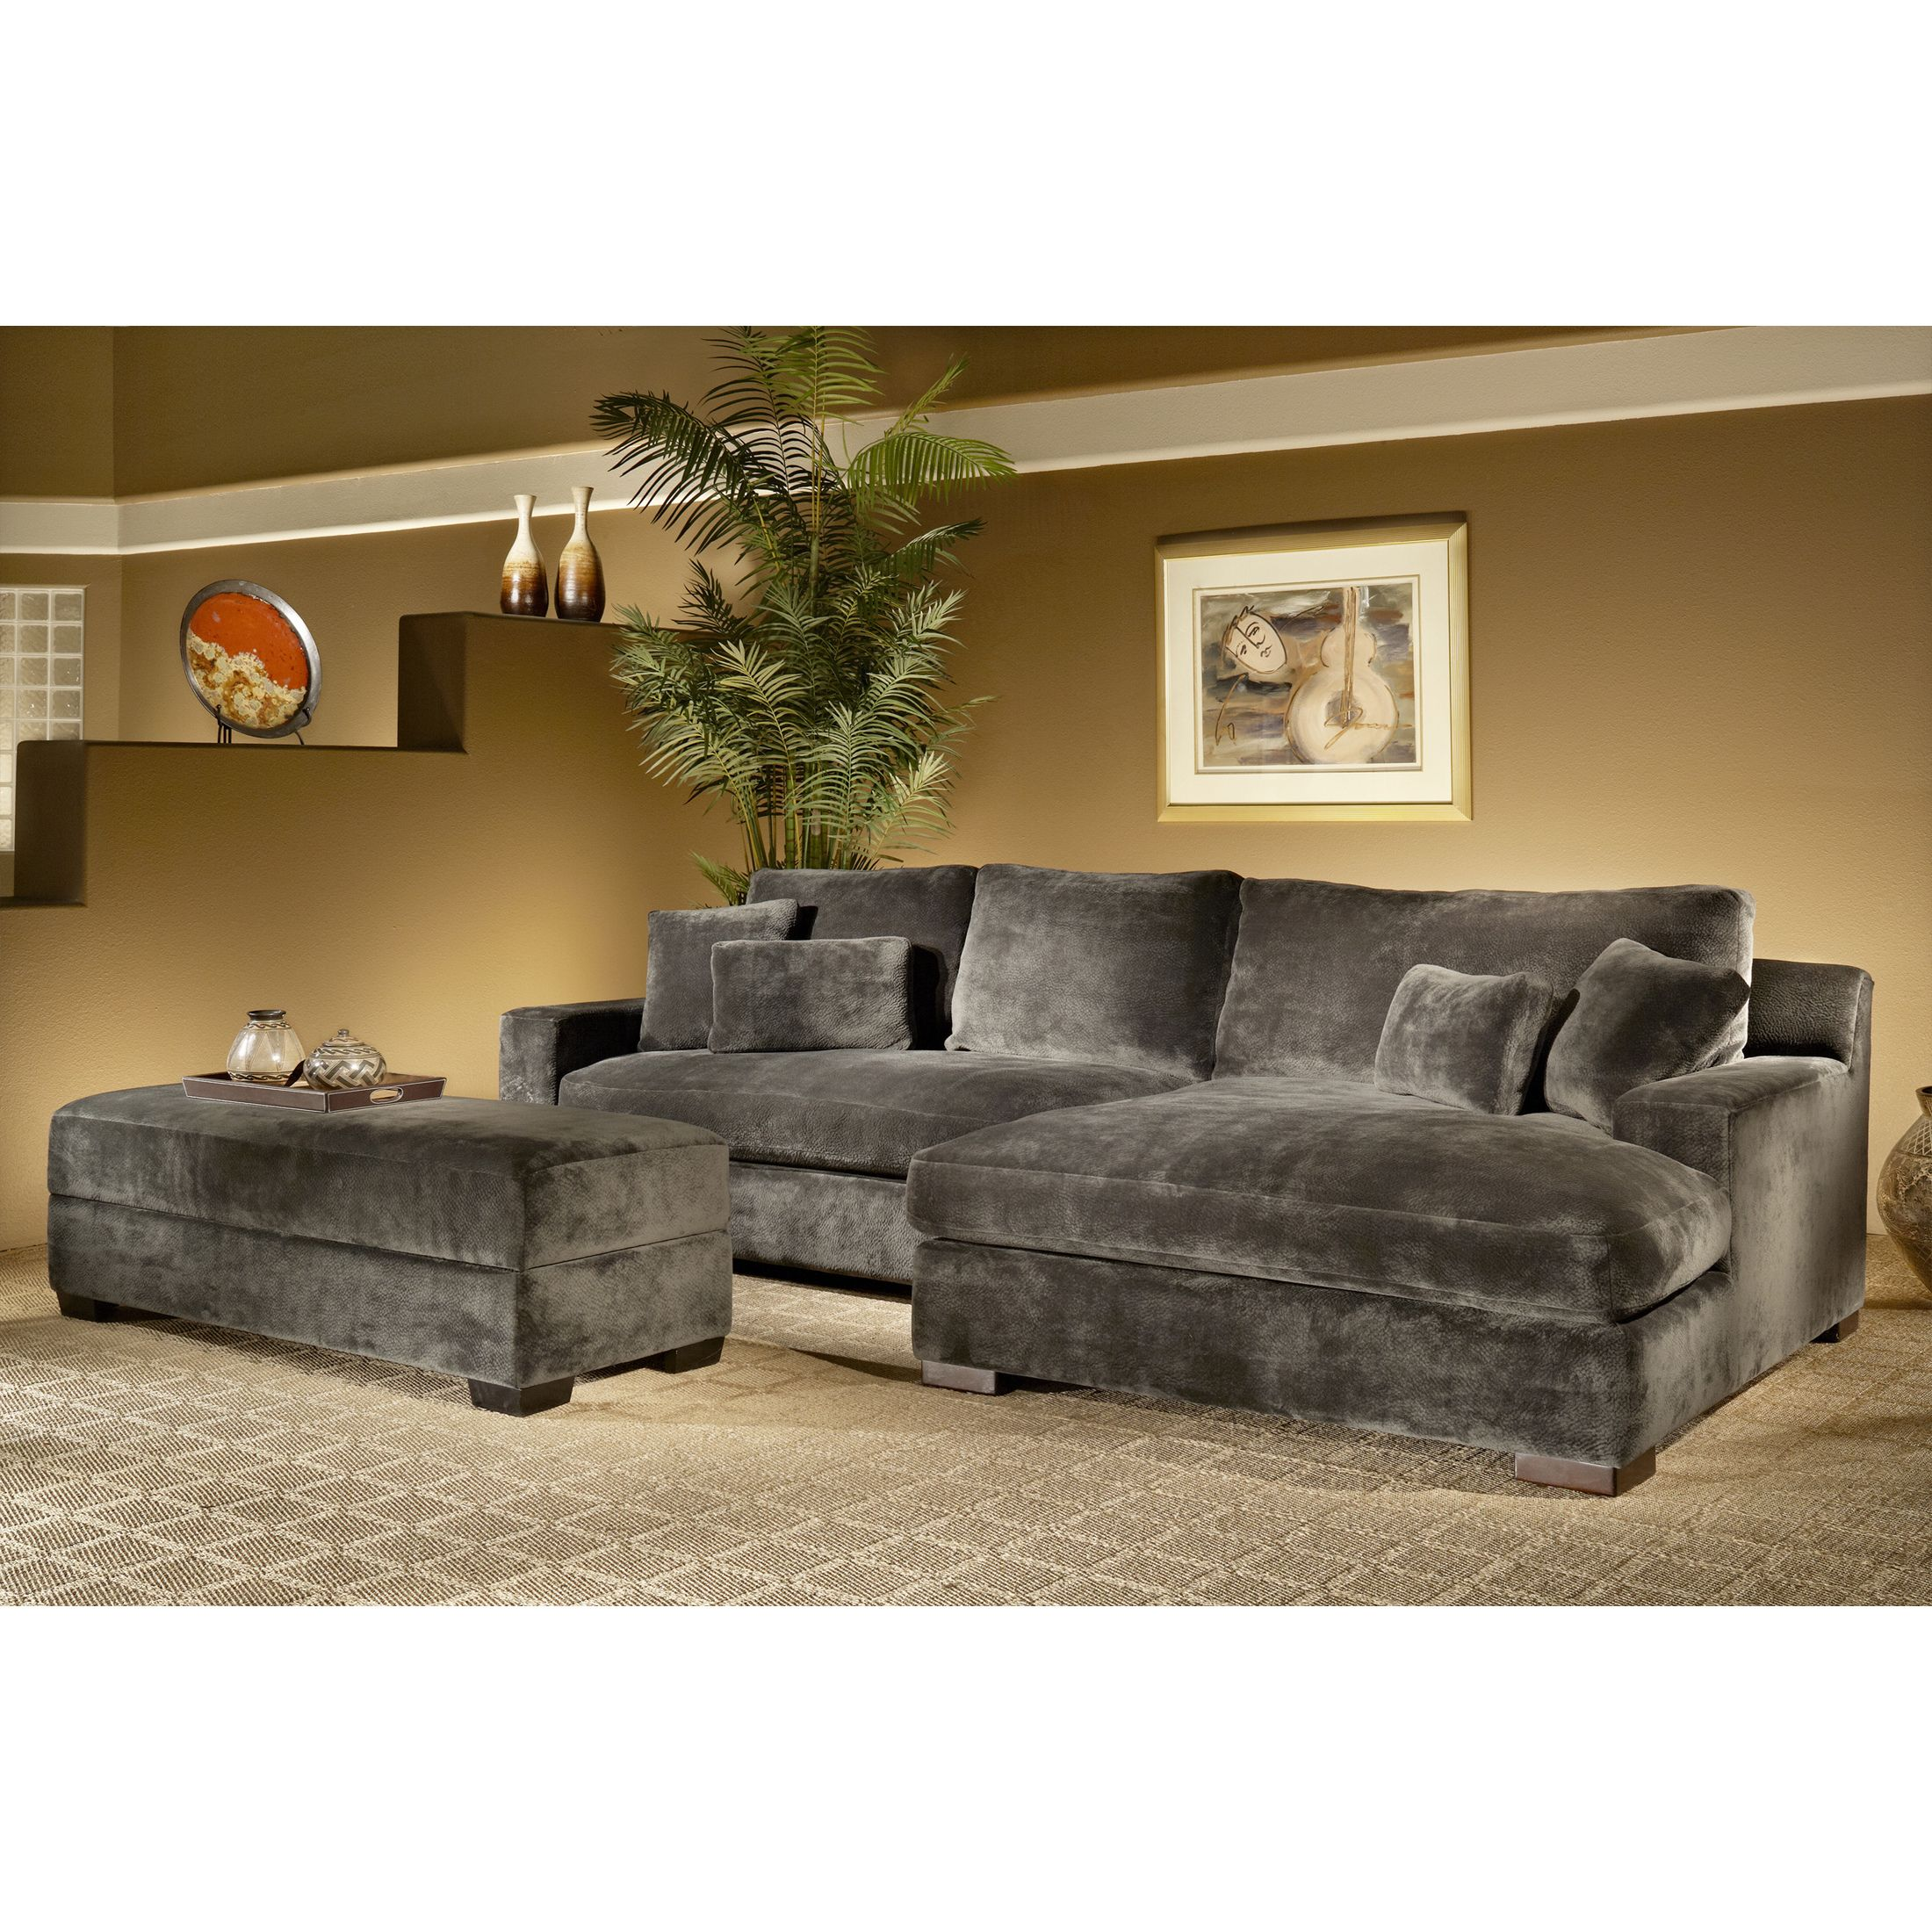 Fairmont Designs Made To Order Doris 3 piece Smoke Sectional Sofa